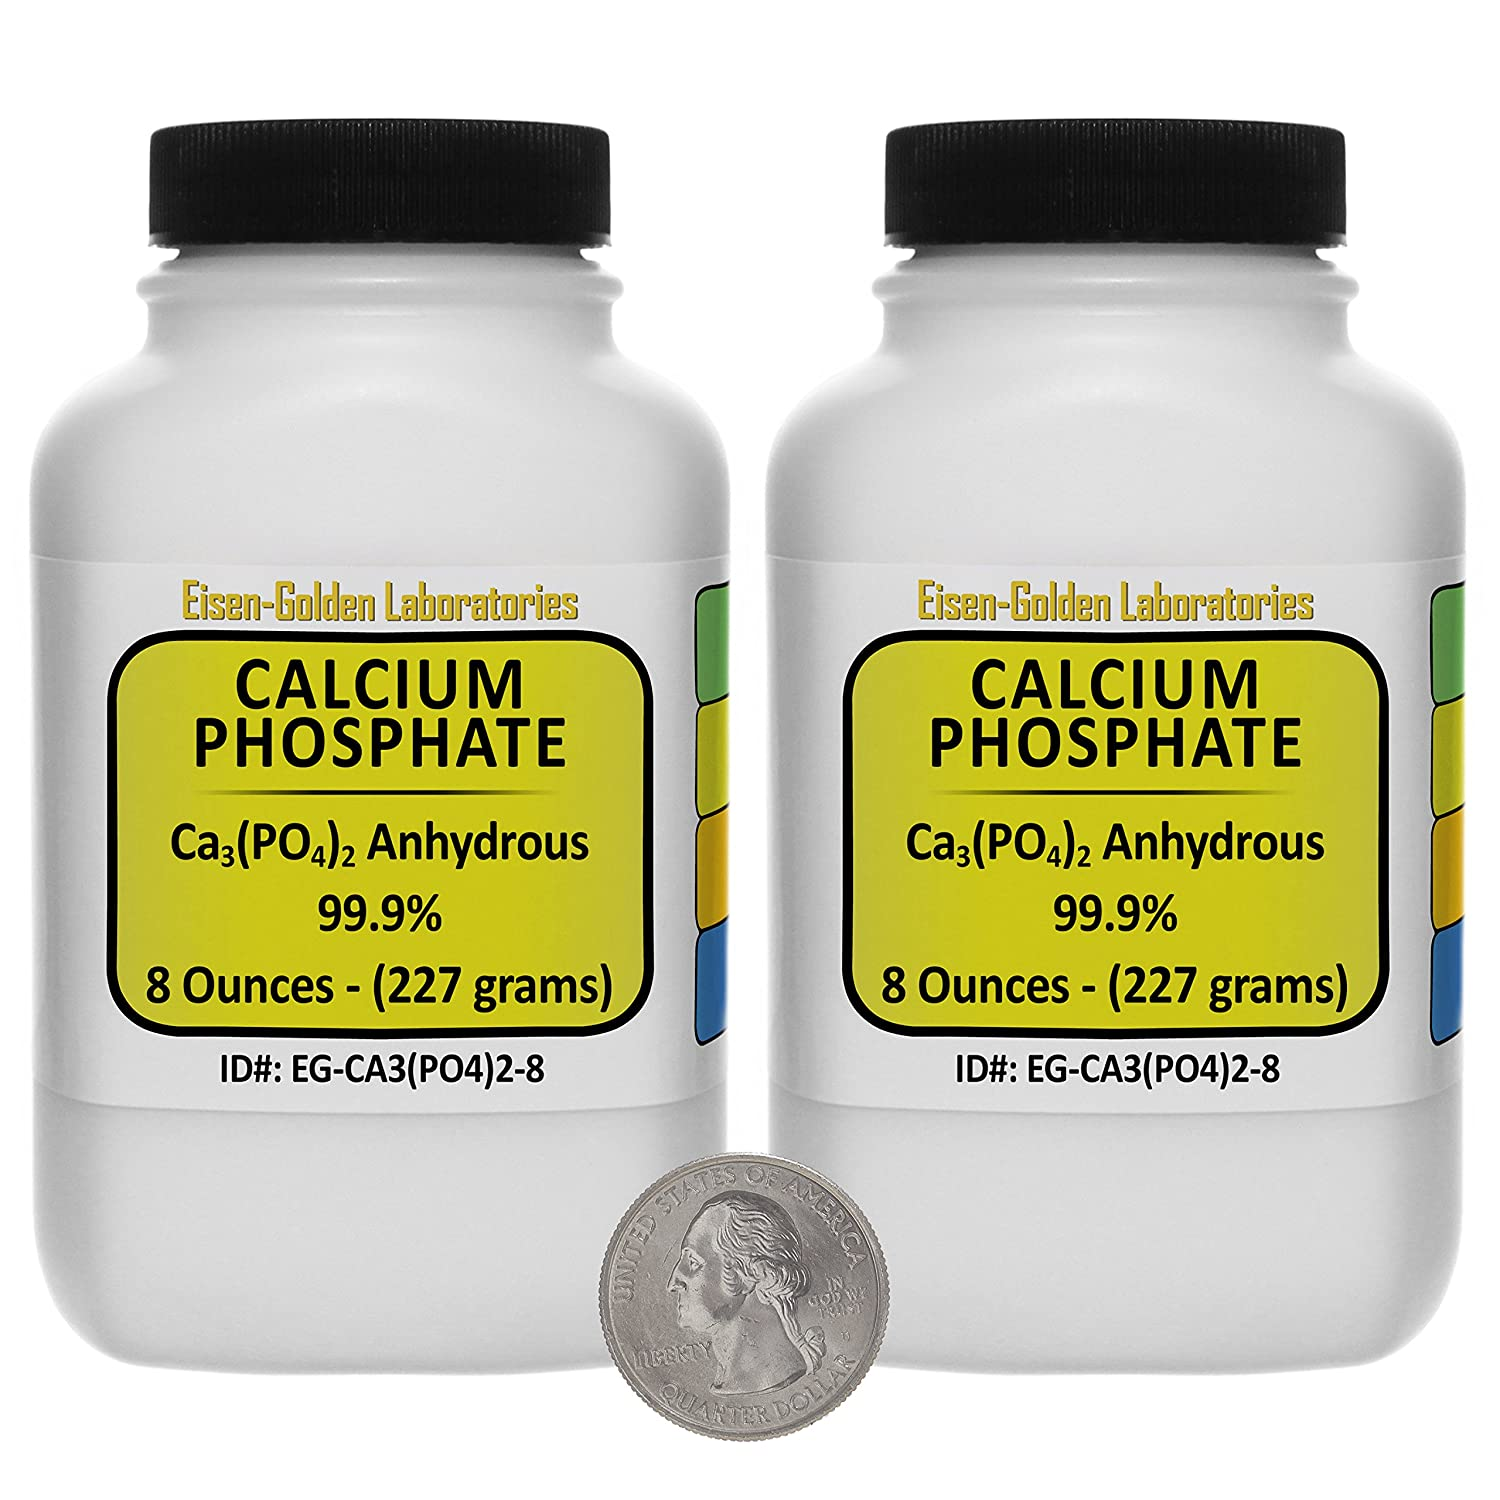 Calcium Phosphate Ca3 Po4 2 99 9 Acs Grade Powder 1 Lb In Two Space Saver Bottles Usa Amazon Com Industrial Scientific It is insoluable in water. calcium phosphate ca3 po4 2 99 9 acs grade powder 1 lb in two space saver bottles usa